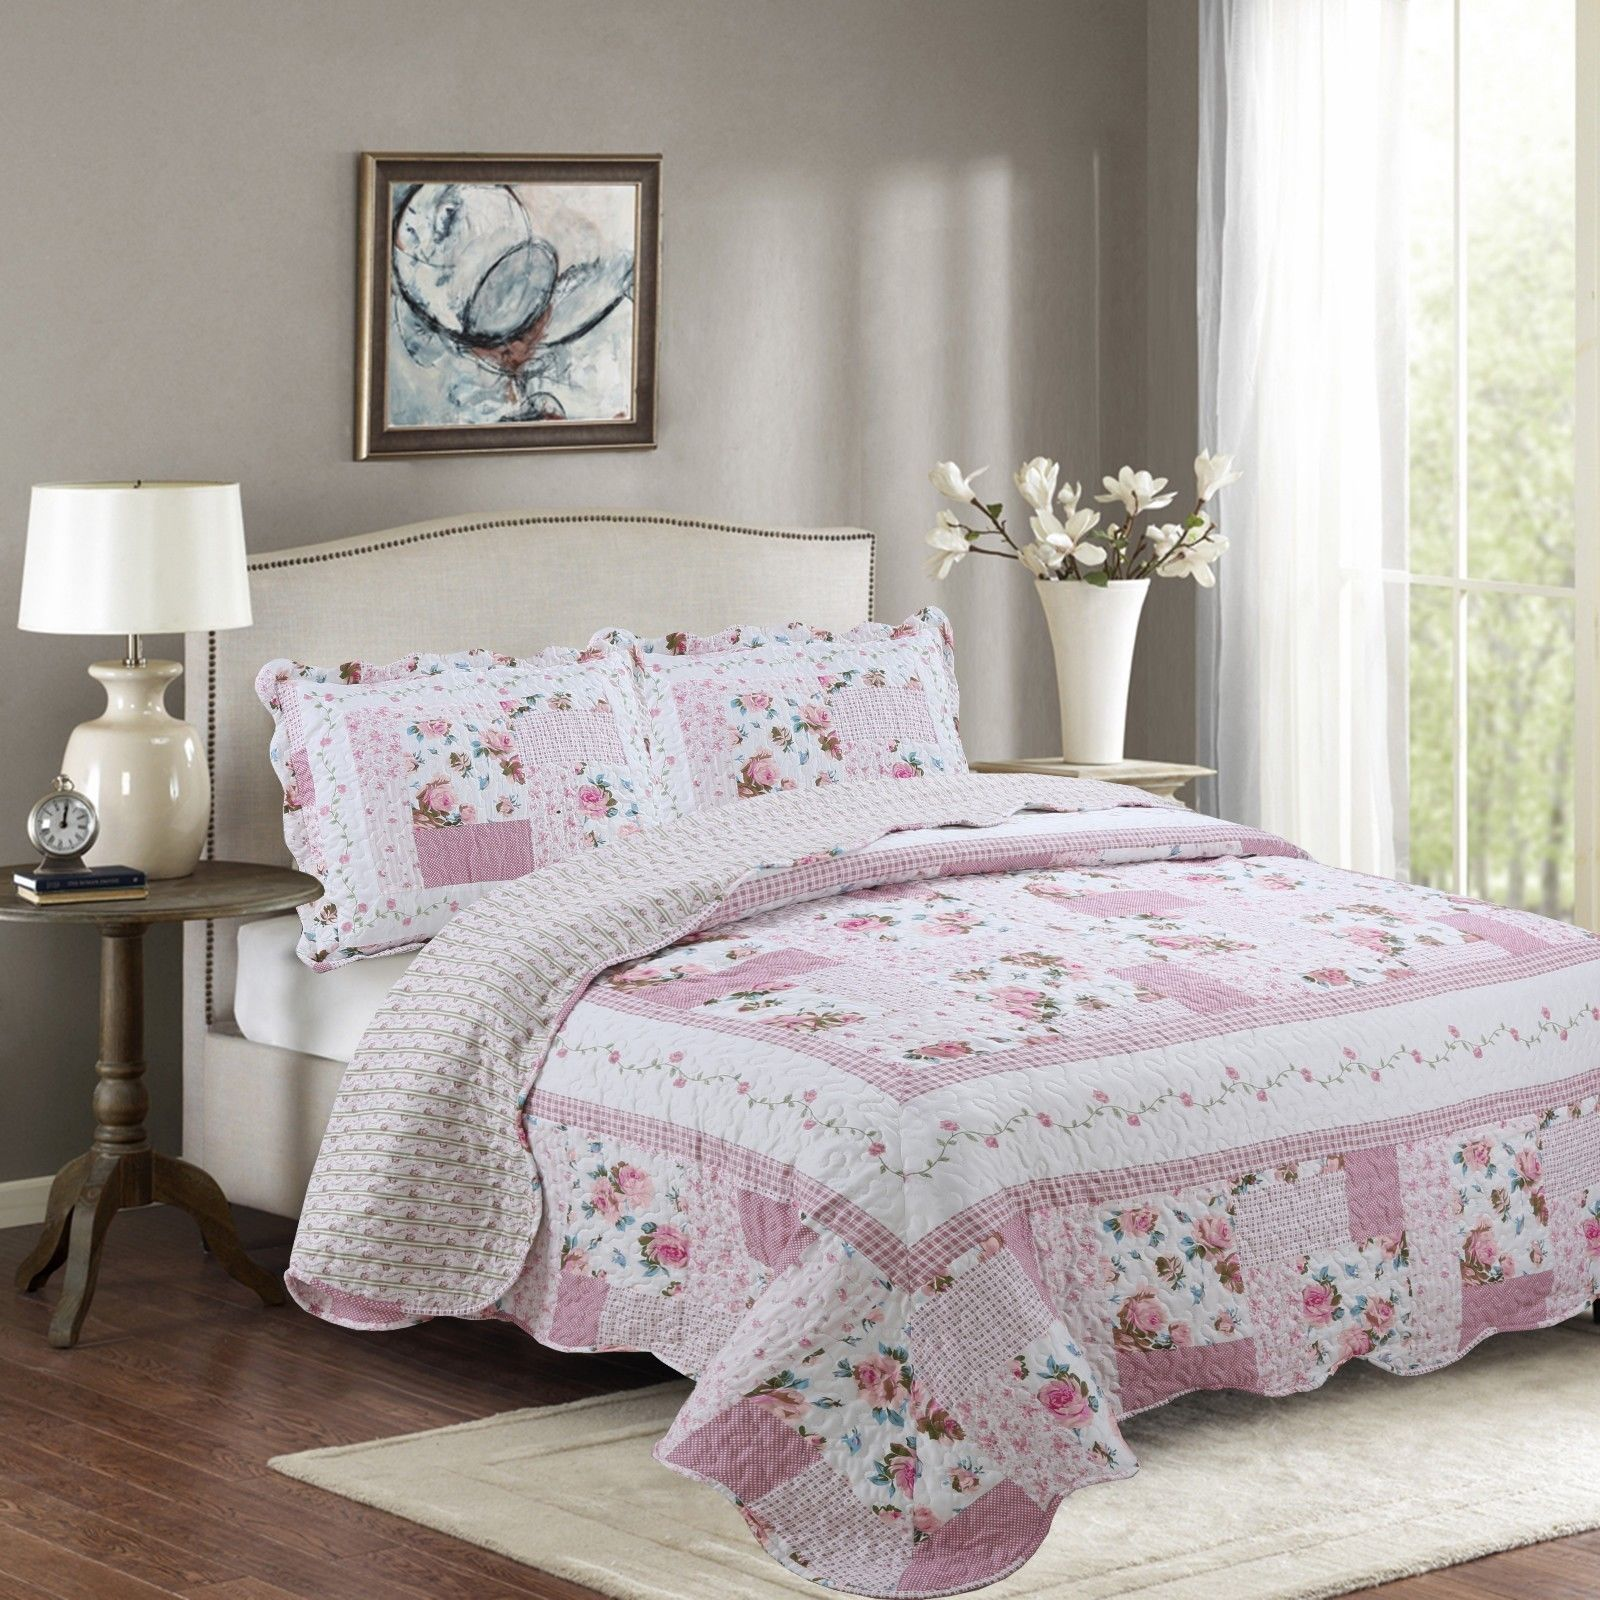 Fancy Linen 2pc Twin Reversible Bedspread Floral Pink White Green New # Melody